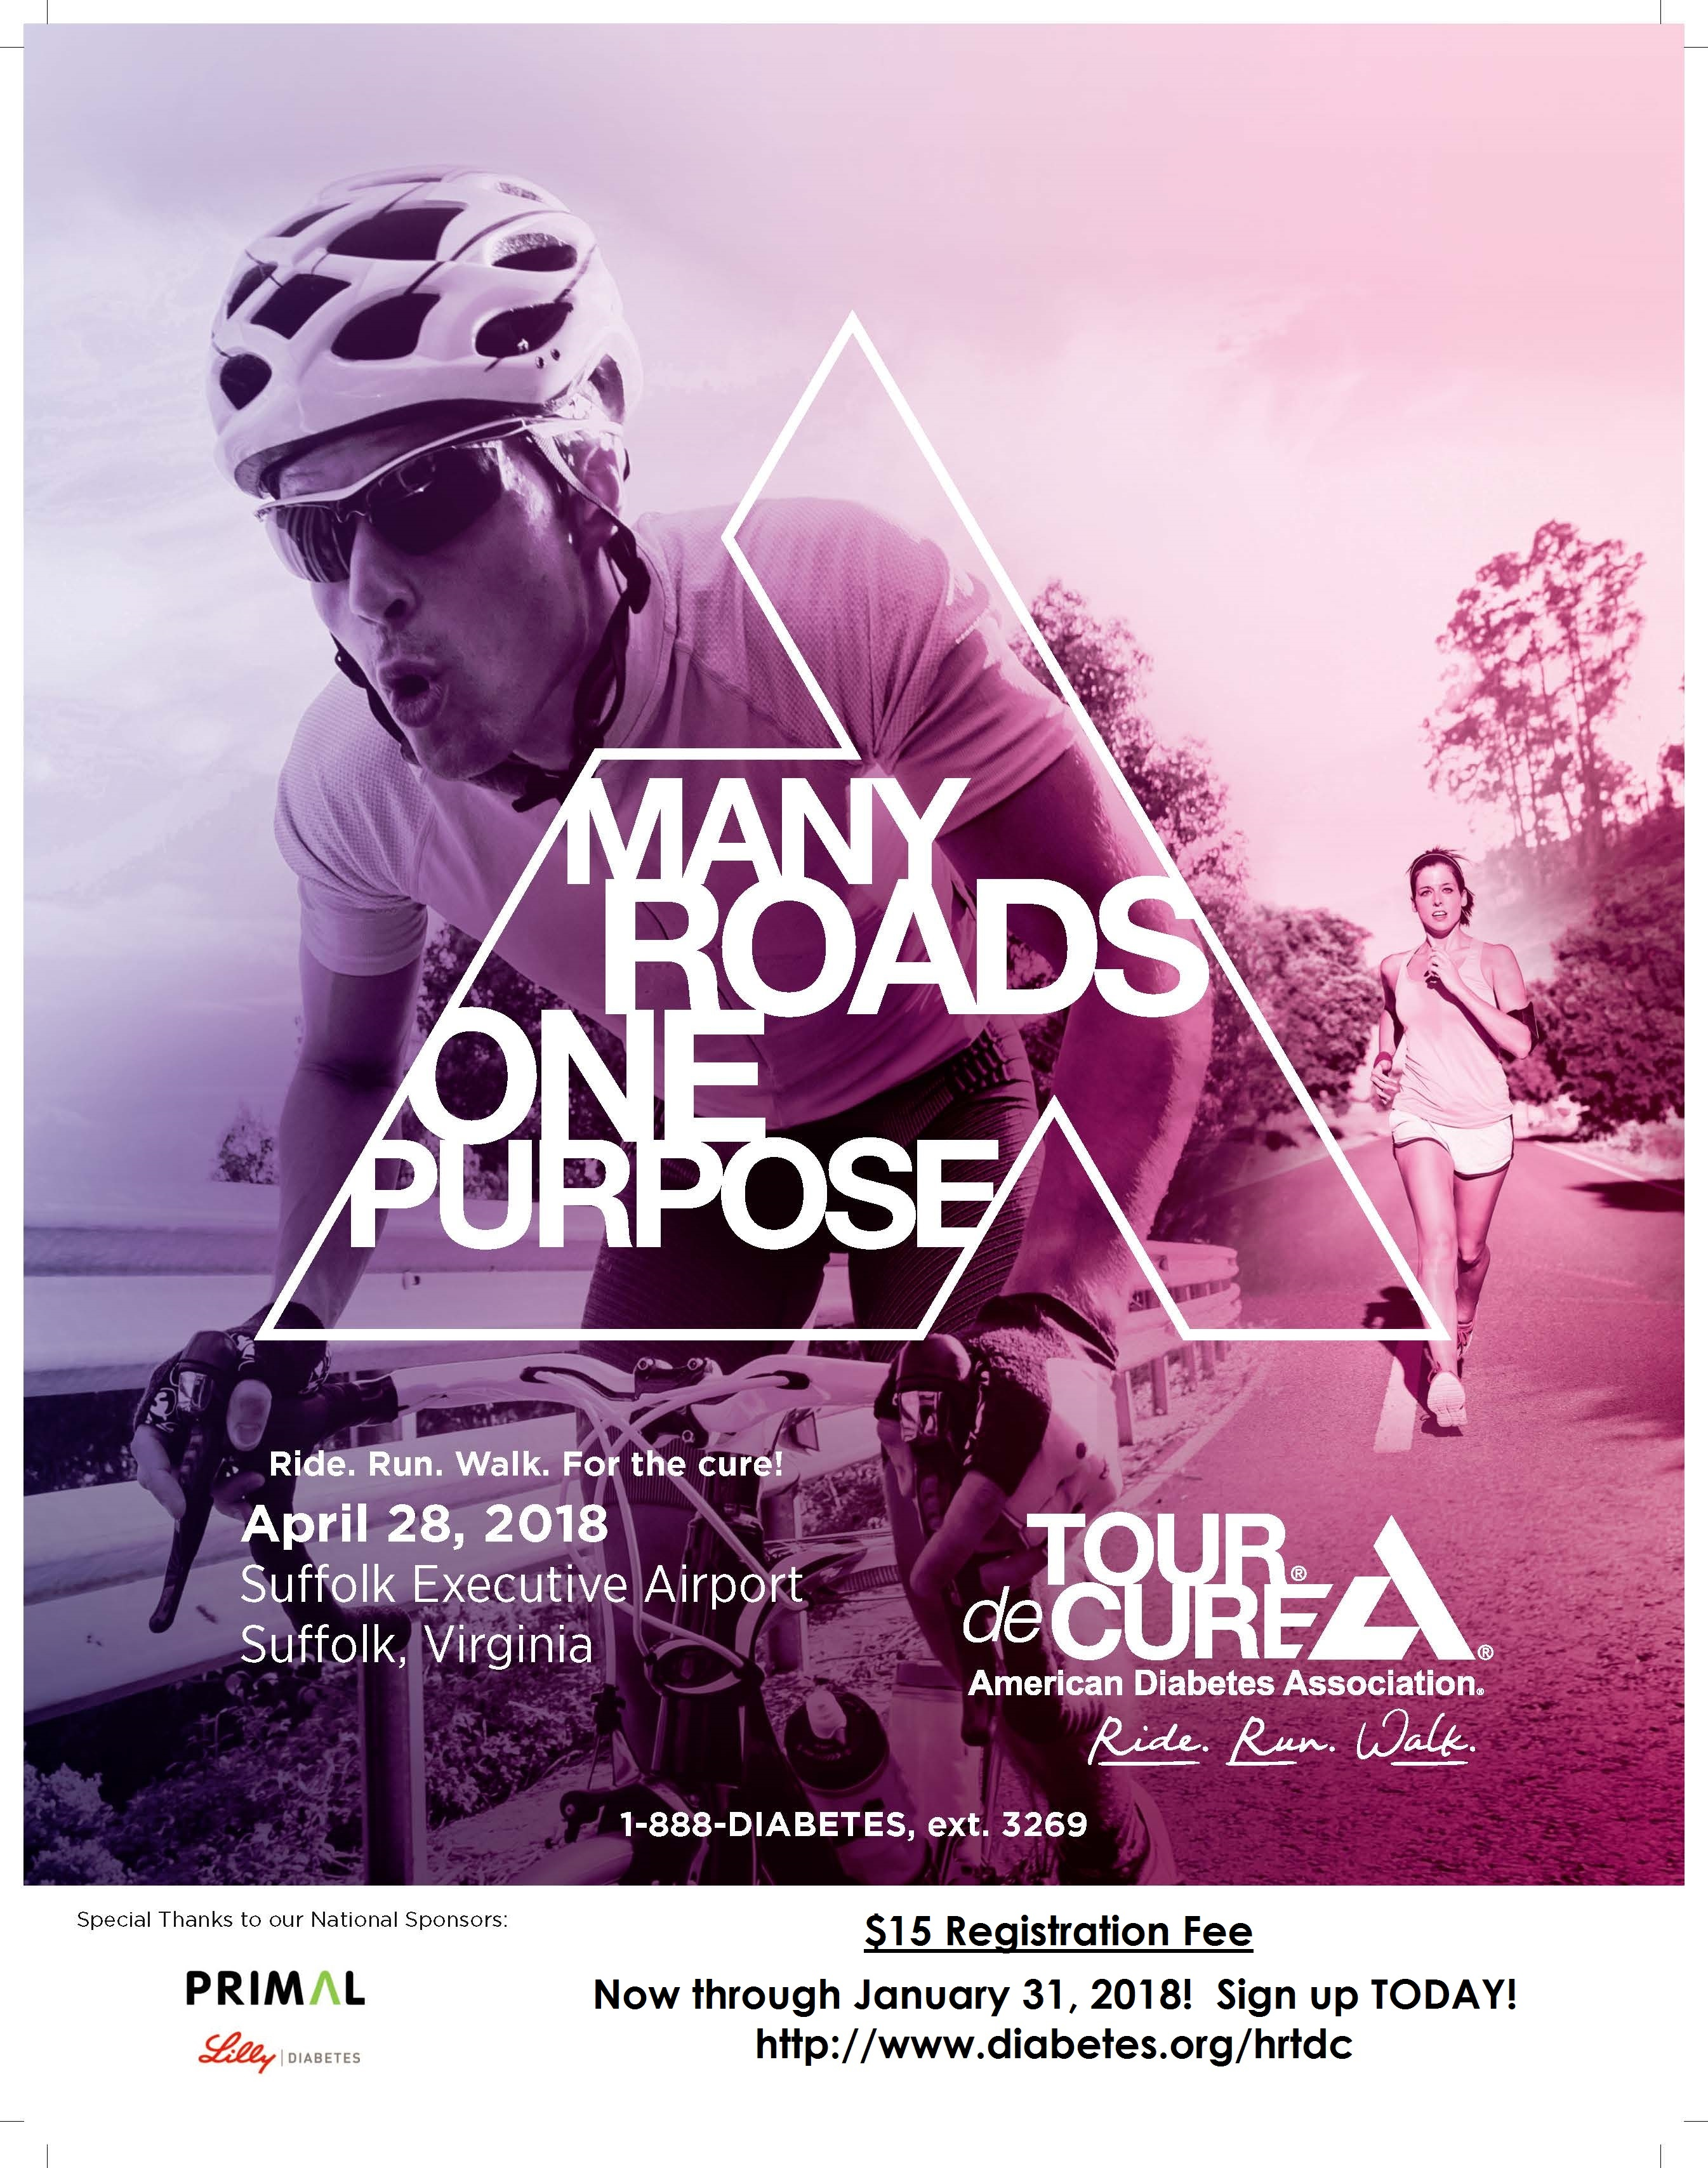 Join the American Diabetes Association for the 2018 Tour de Cure!